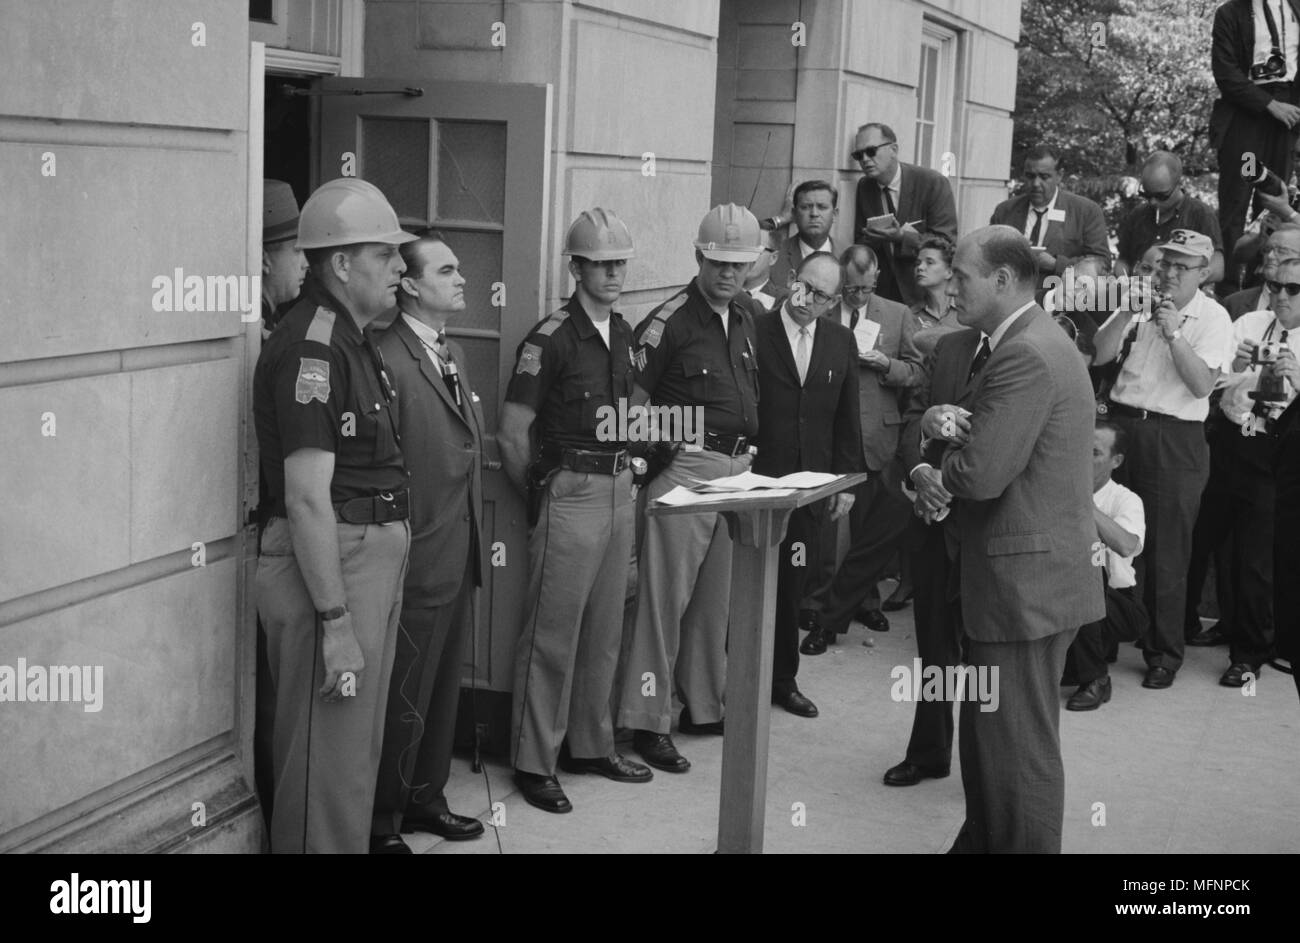 George Wallace (1919-1998) Governor of Alabama for four terms between 1963 and 1987. Wallace attempting to block integration at the University of Alabama,  standing defiantly at a door while being confronted by  US Deputy Attorney General Nicholas Katzenbach,  11 June 1963.  Photographer:  Warren K  Leffler. - Stock Image